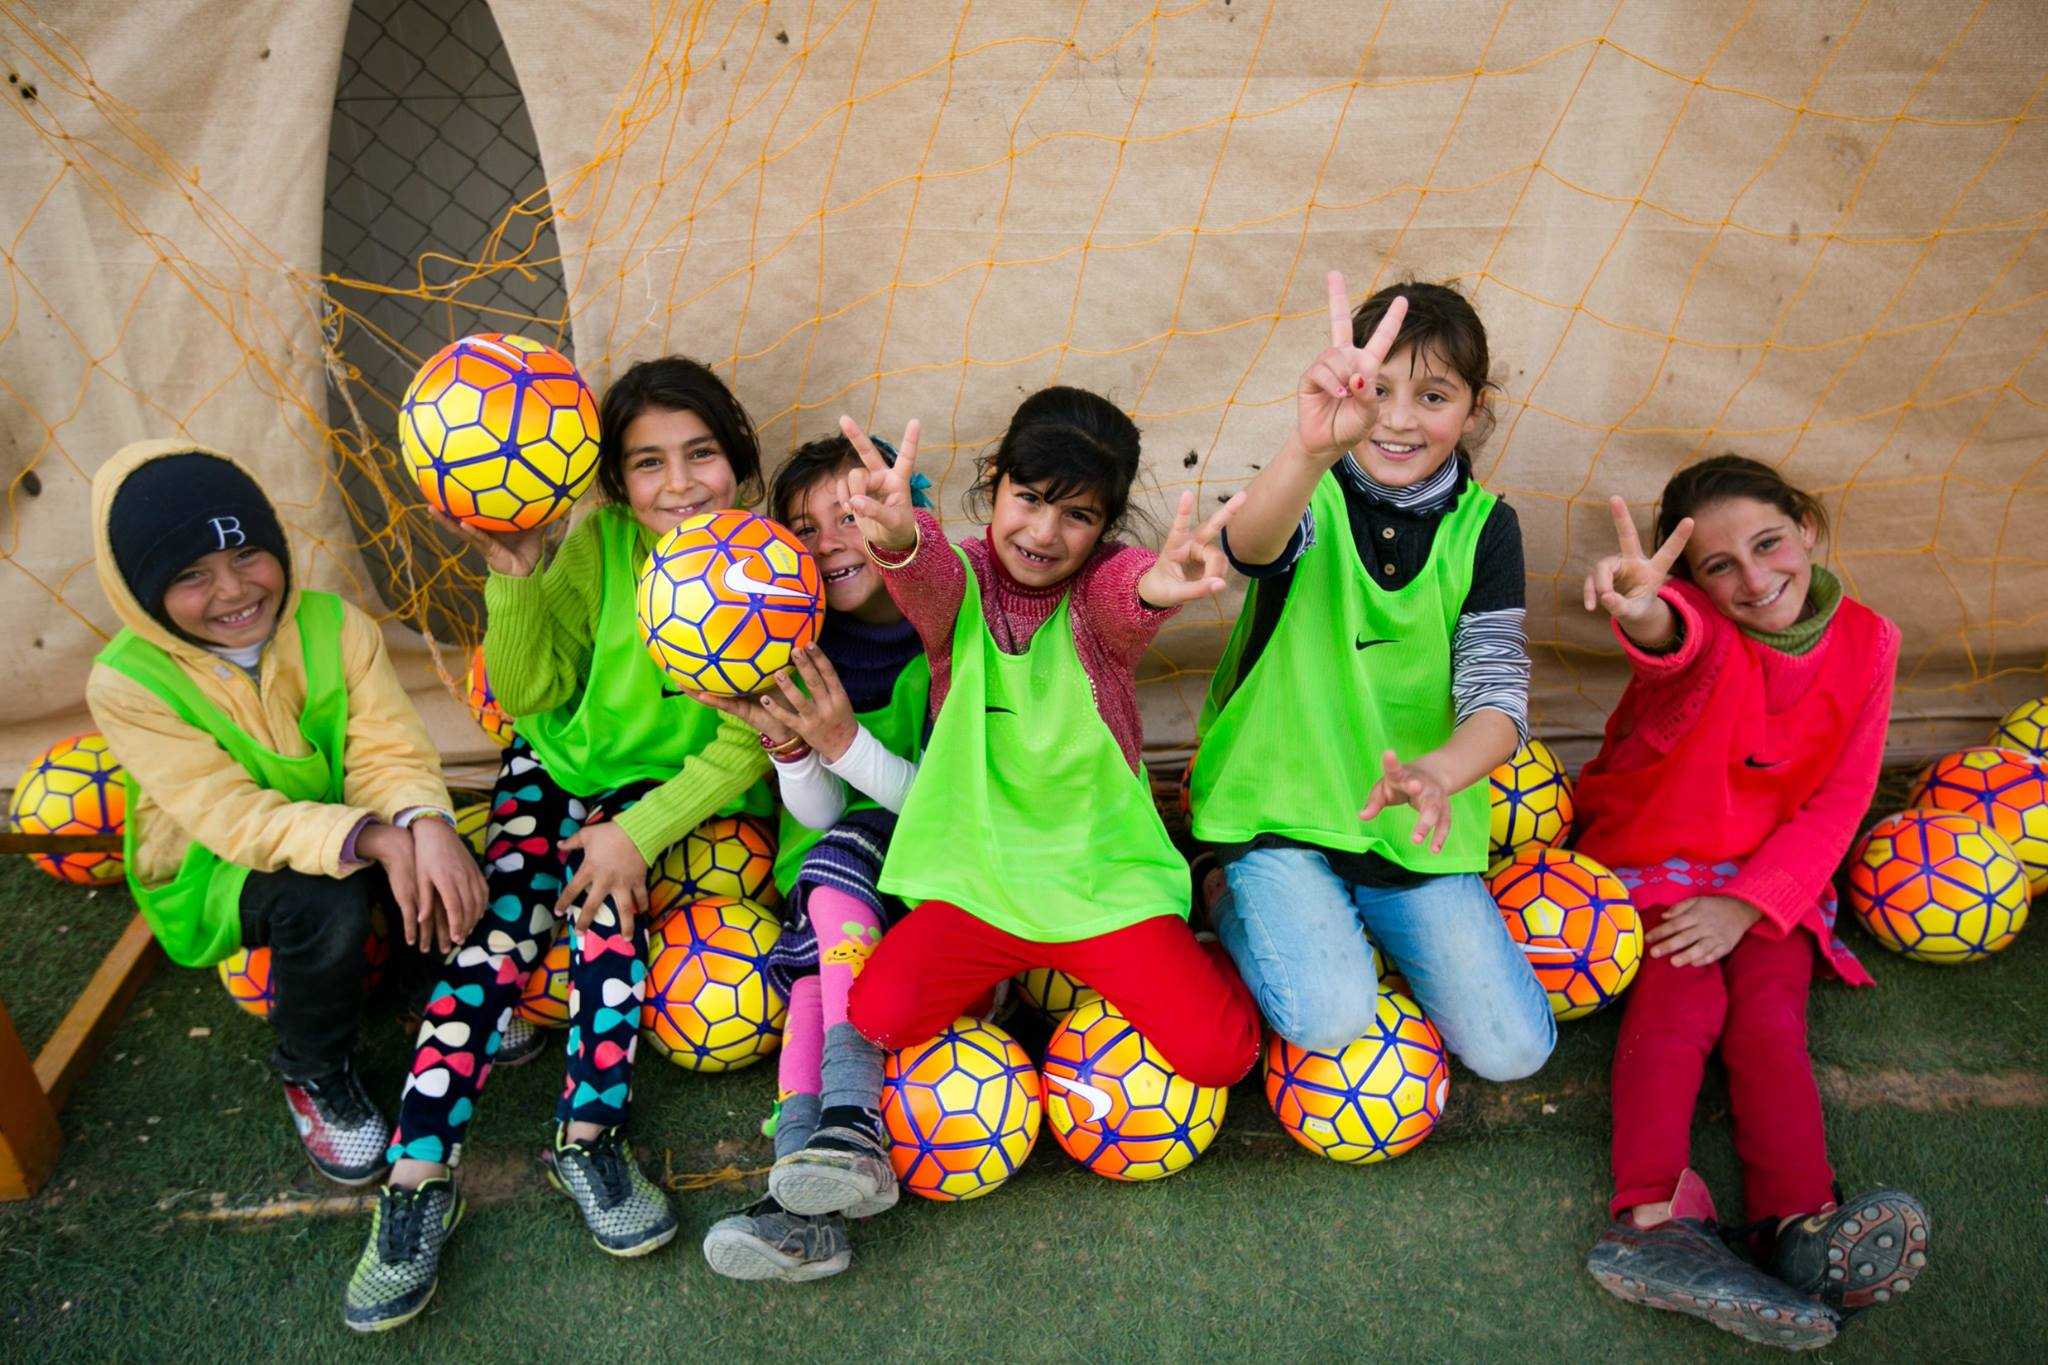 Youth in Jordan celebrate with donated equipment from U.S. Soccer after participating in sports clinics lead by Global Sports Mentoring Alumnae and Mentors. Photo courtesy of Center for Sport, Peace, and Society at the University of Tennessee. 2015.